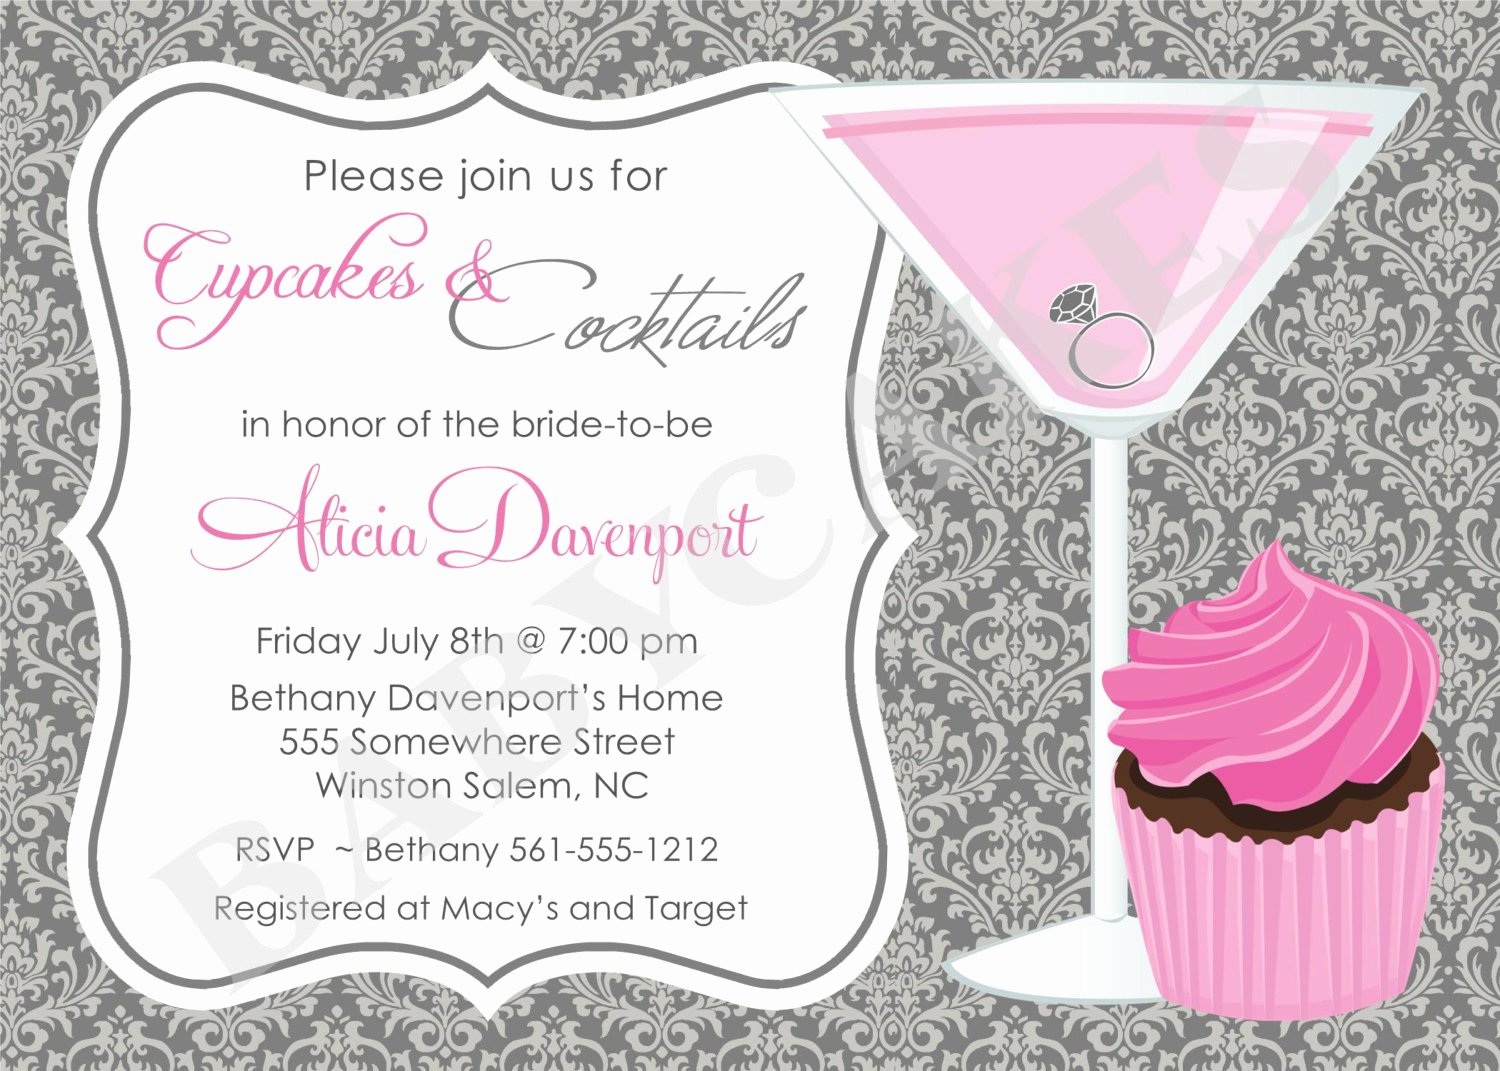 Cocktail Party Invite Templates New Cupcakes and Cocktails Bridal Shower Invitation by Jcbabycakes